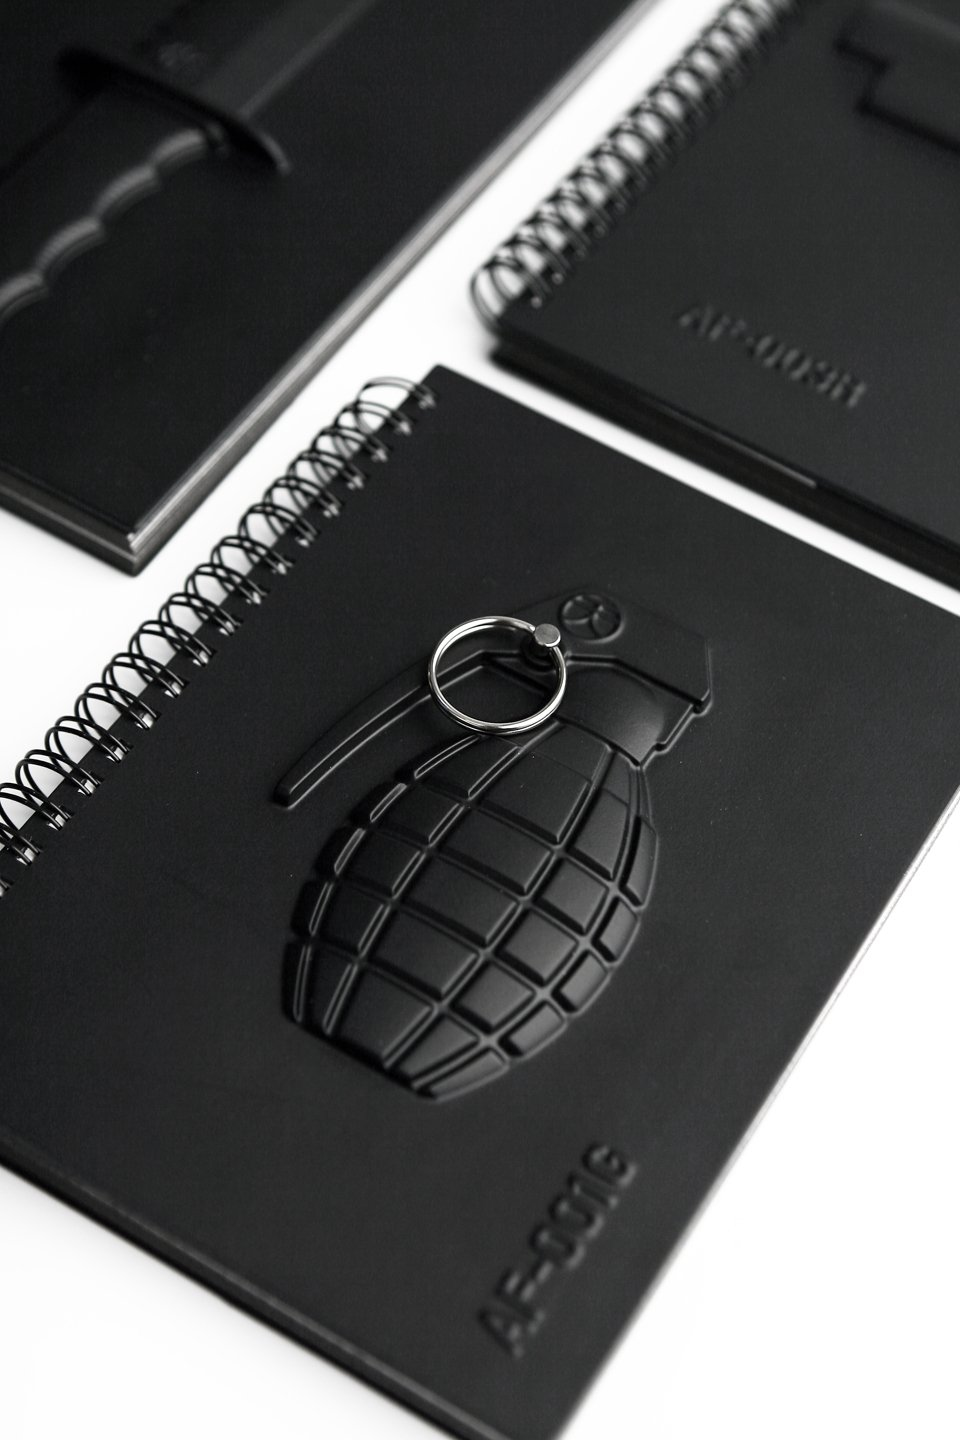 Armed Notebook – Grenade-22784